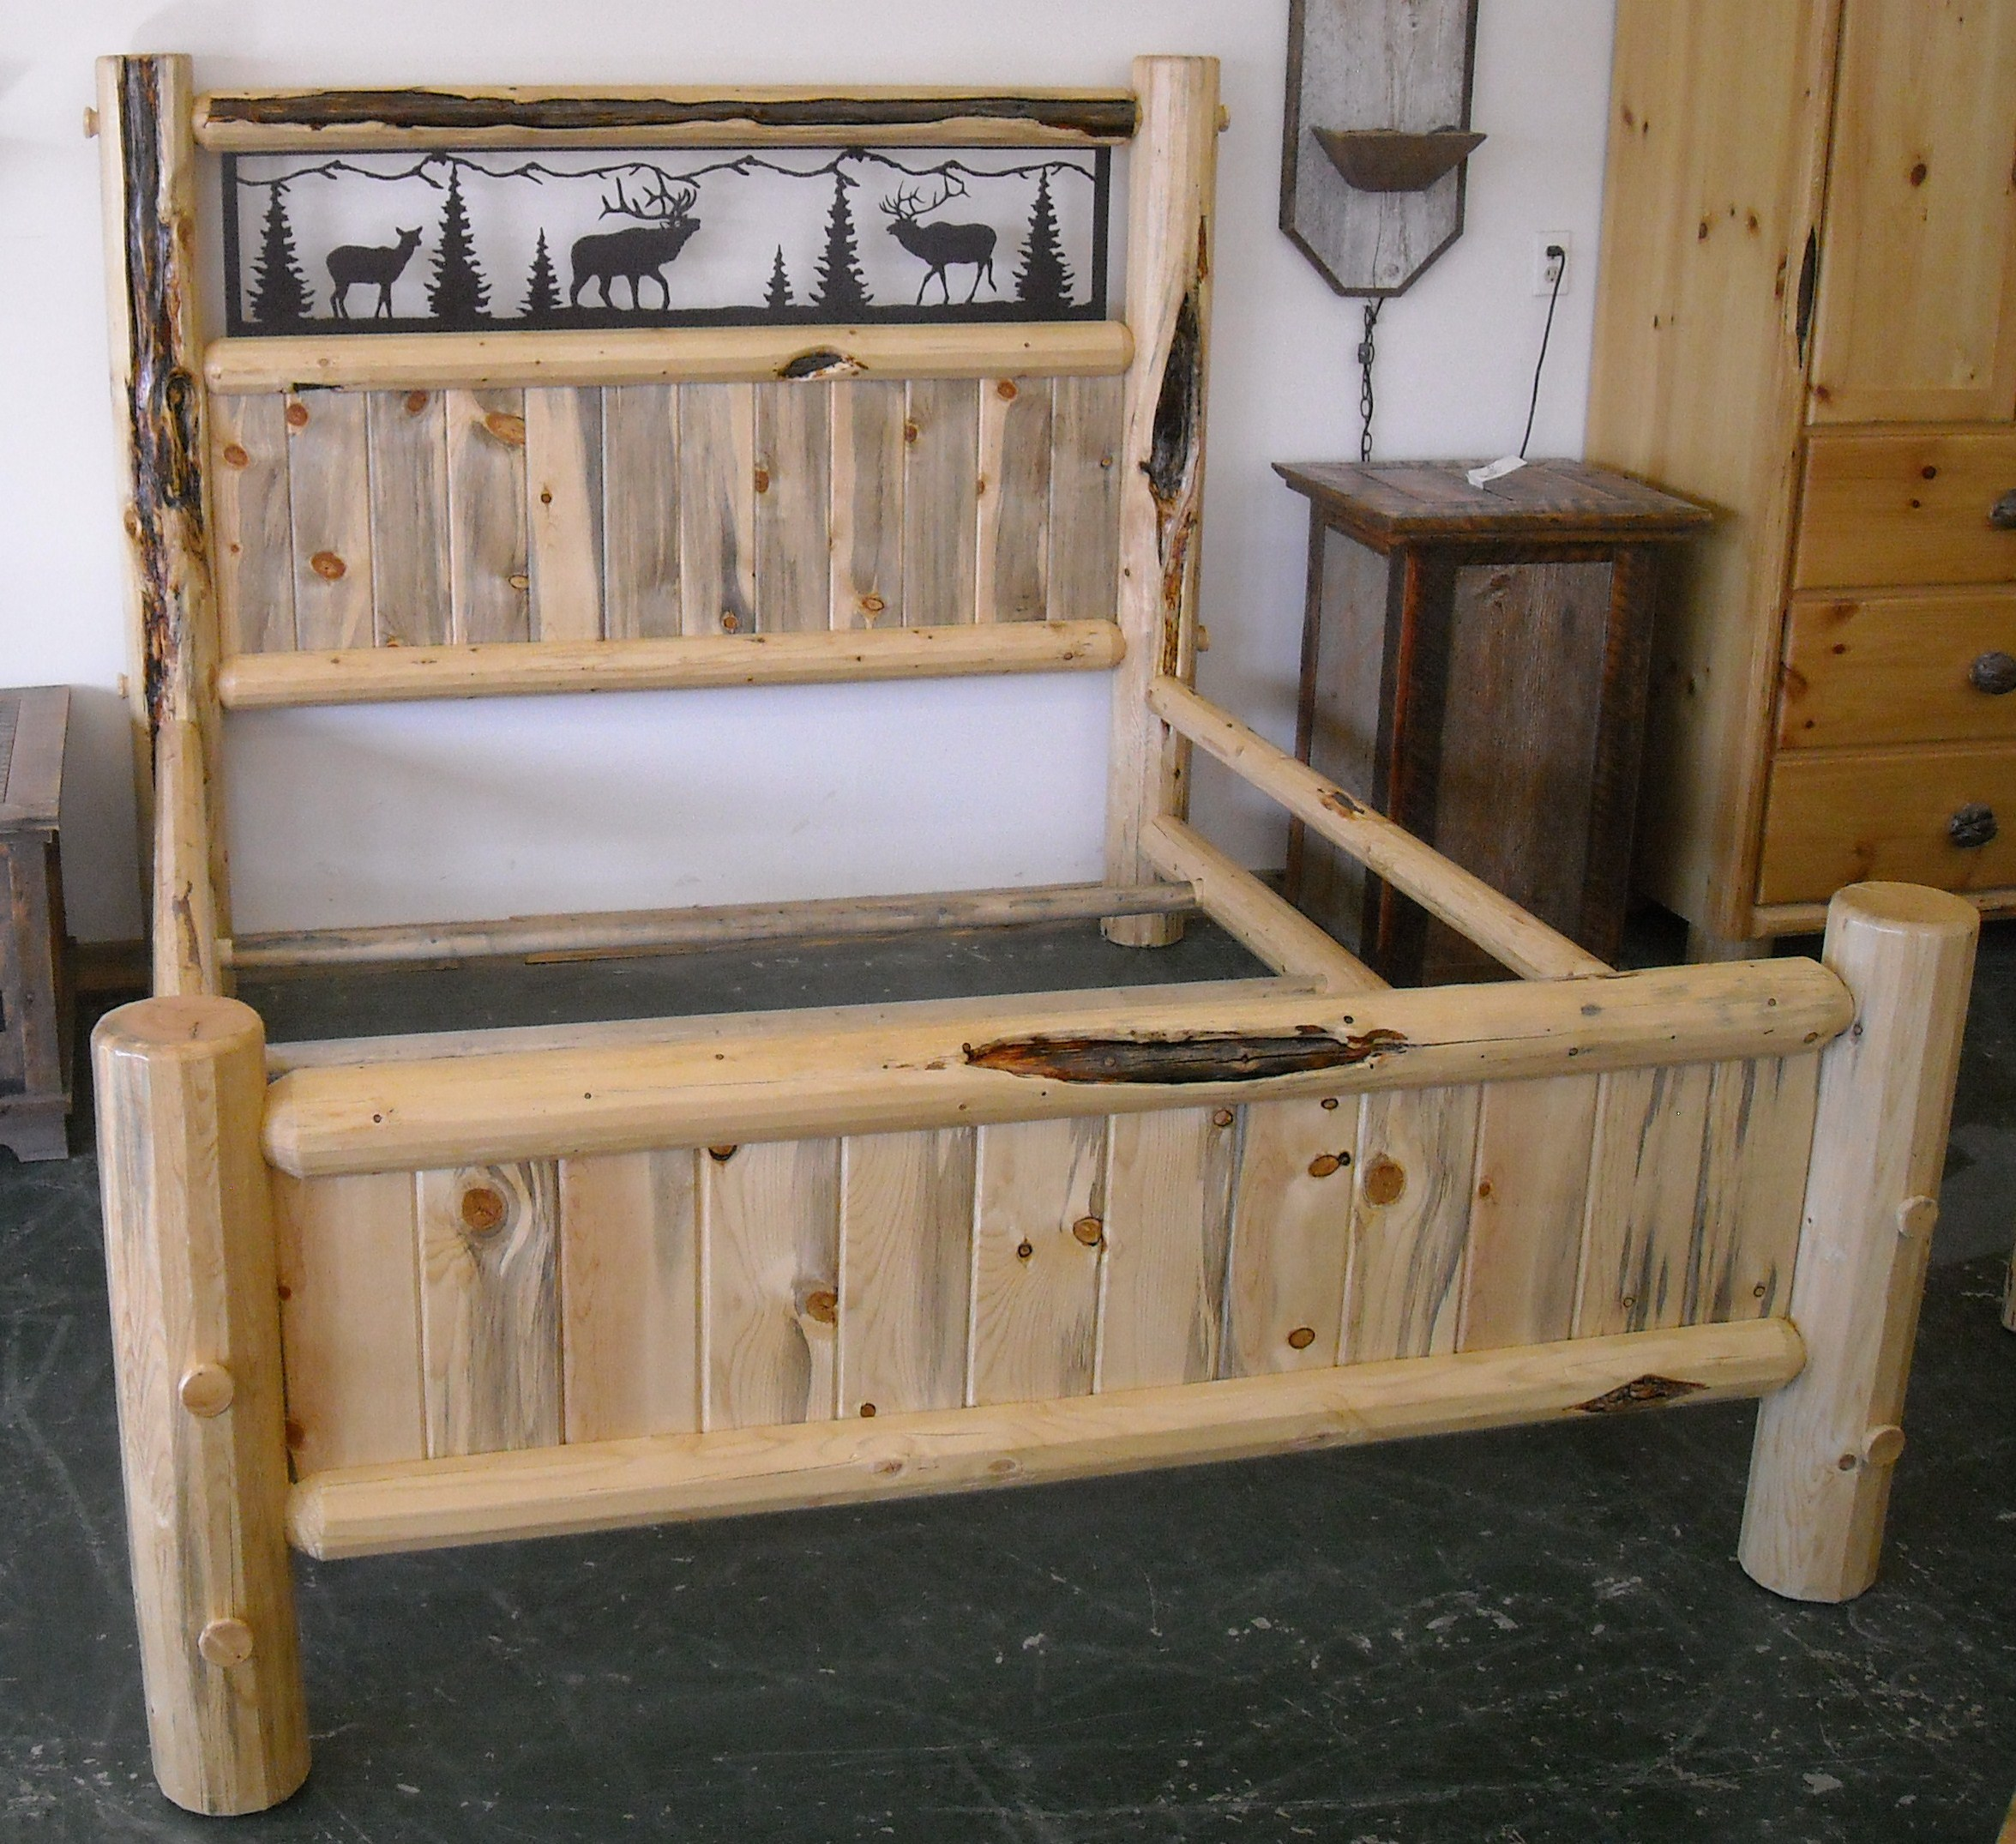 blued-pine-t-g-iron-bed-king-1050-00-queen-900-00-full-850-00-twin-700-00